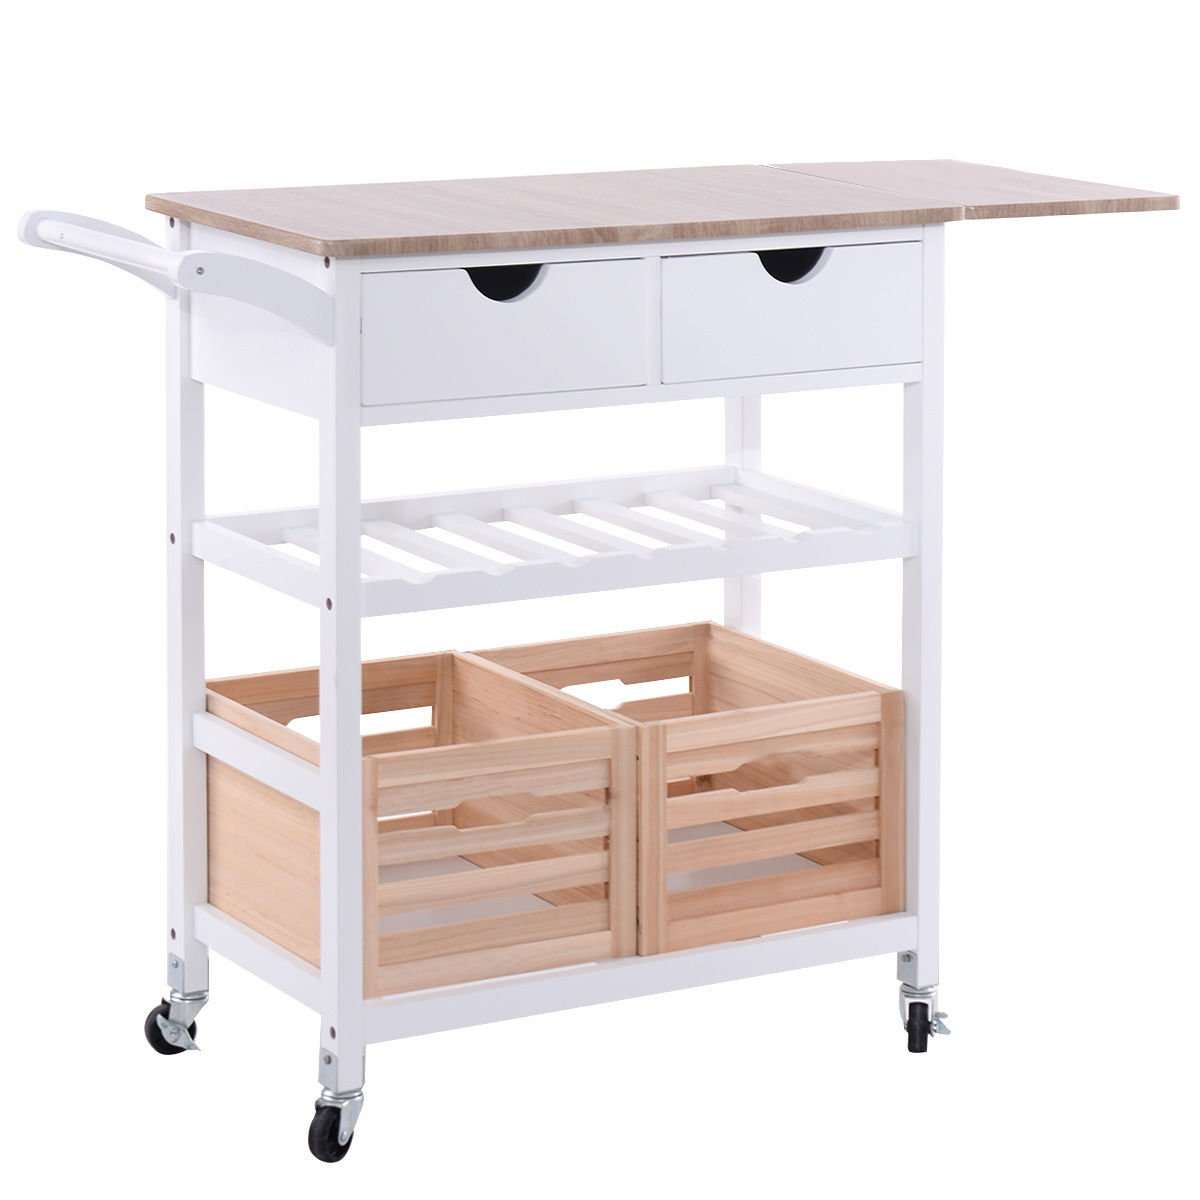 Kitchen prep table marble - Costzon Kitchen Trolley Island Cart Dining Storage With Drawers Basket Wine Rack